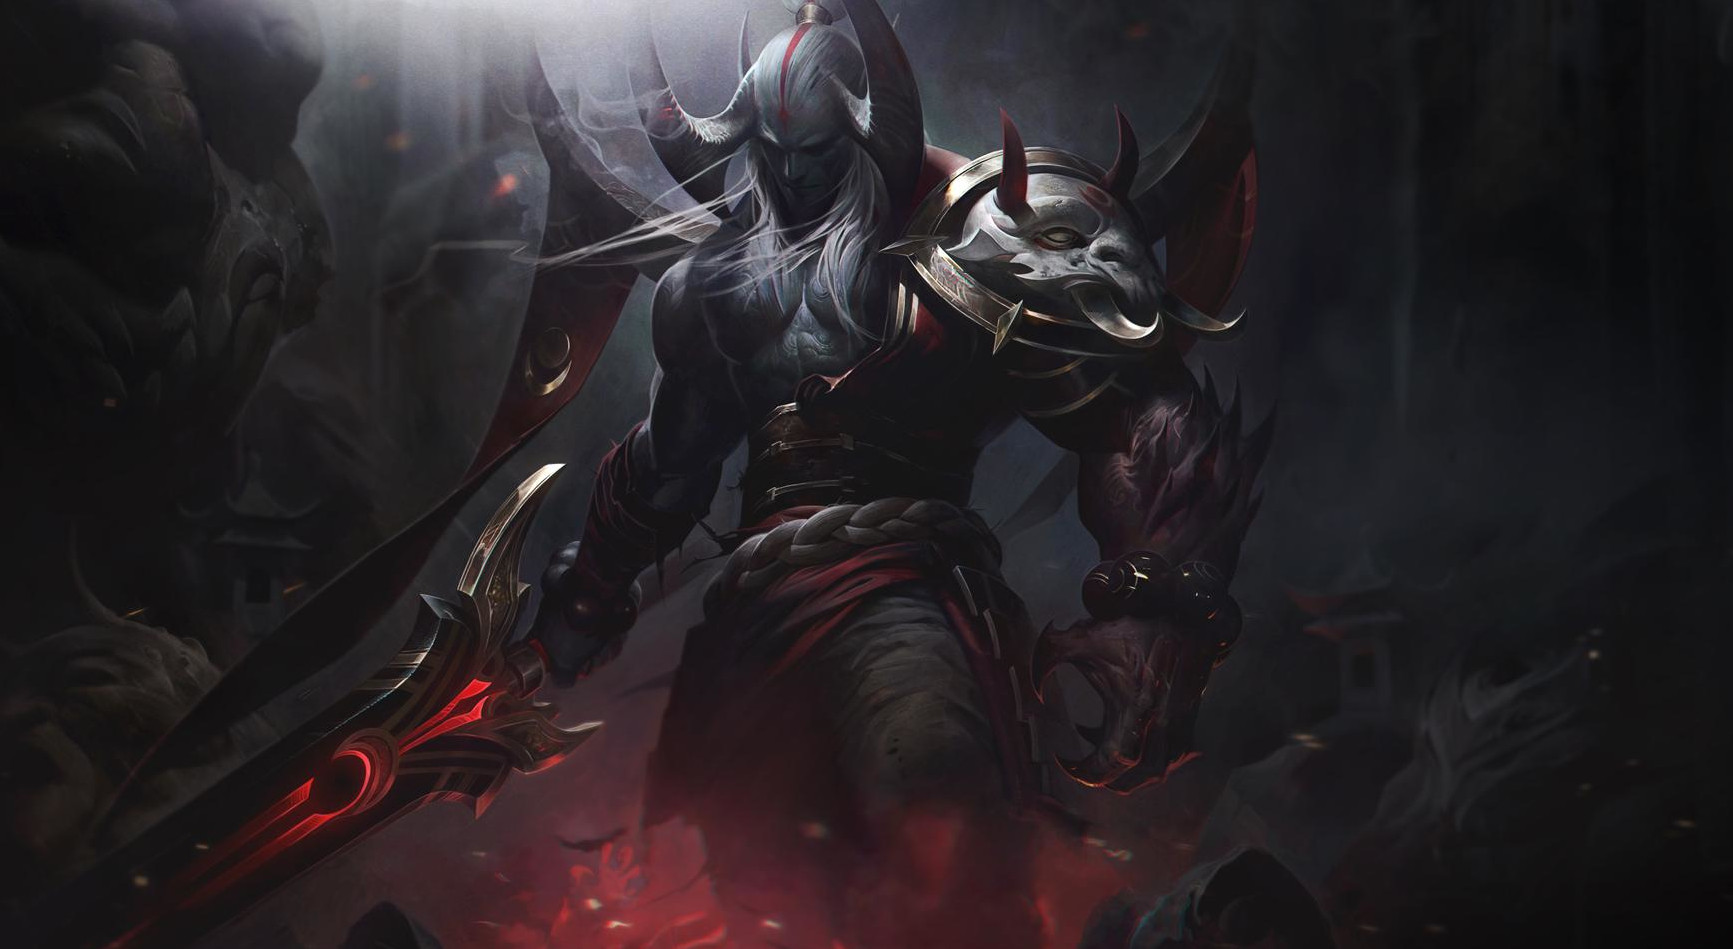 how to get free skins on league of legends